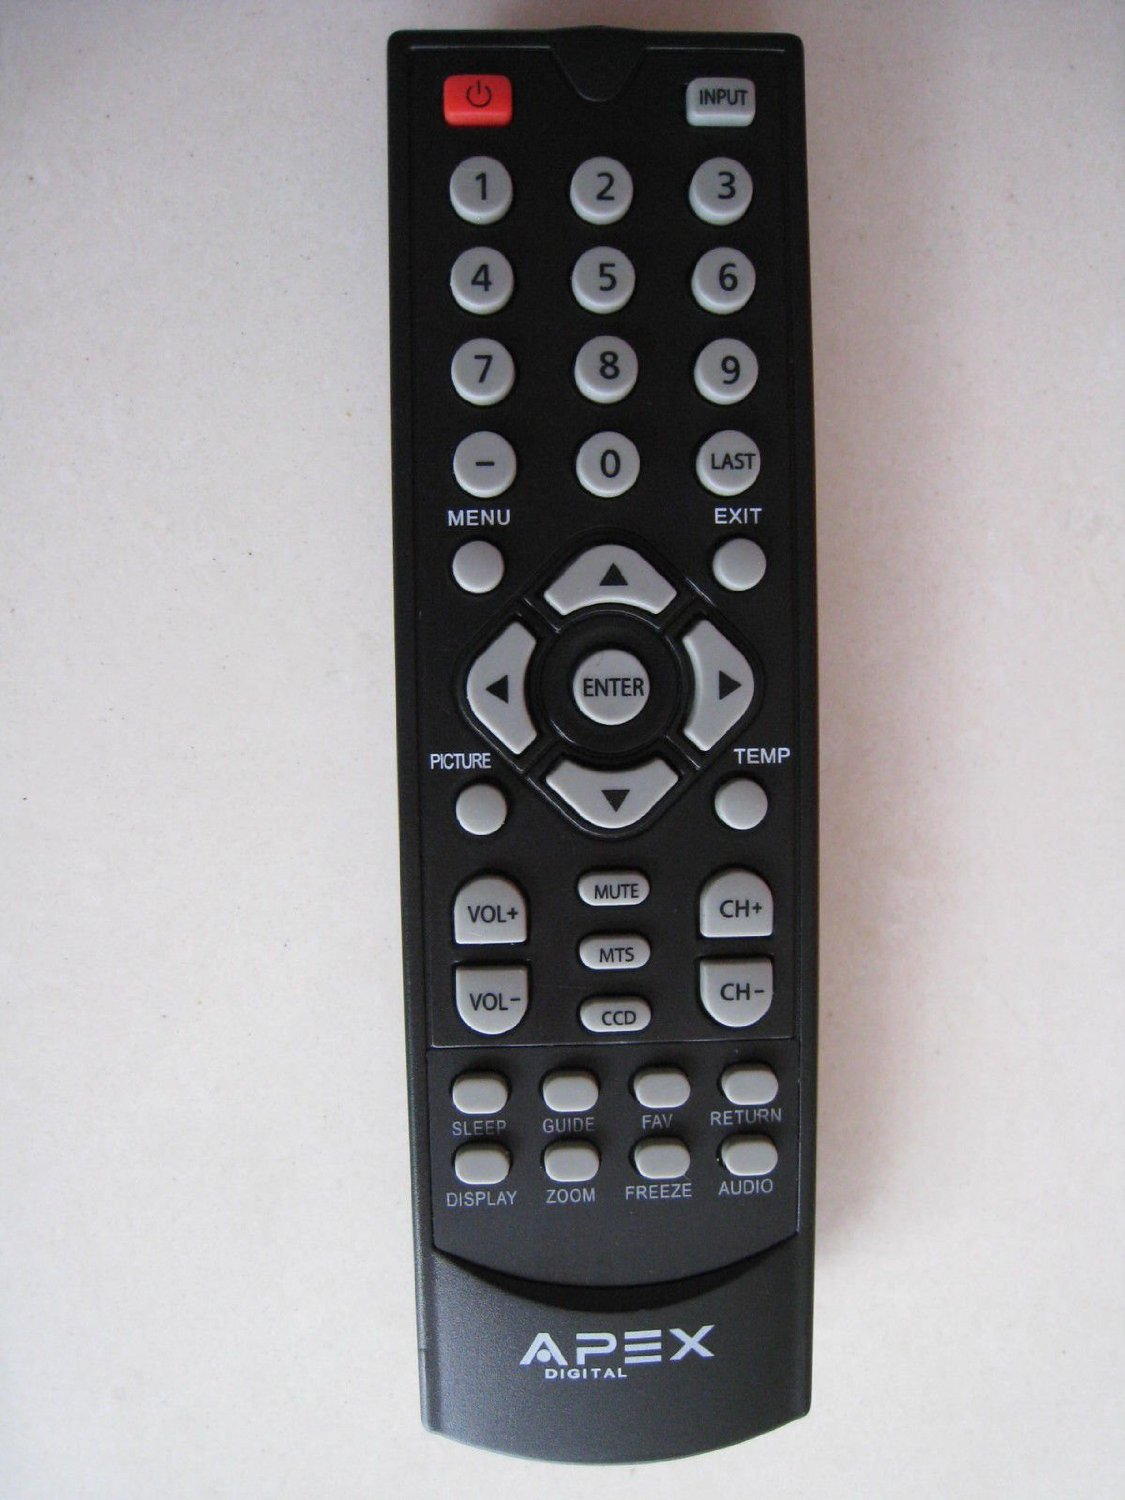 Brand new APEX Remote control for LE1912 LD2D8RM LE1912D LE2412 LE2412D LE3212D LCD LED TV and almost all 2012 2013 2014 32'' inch and below 32 inch APEX LCD LED TV